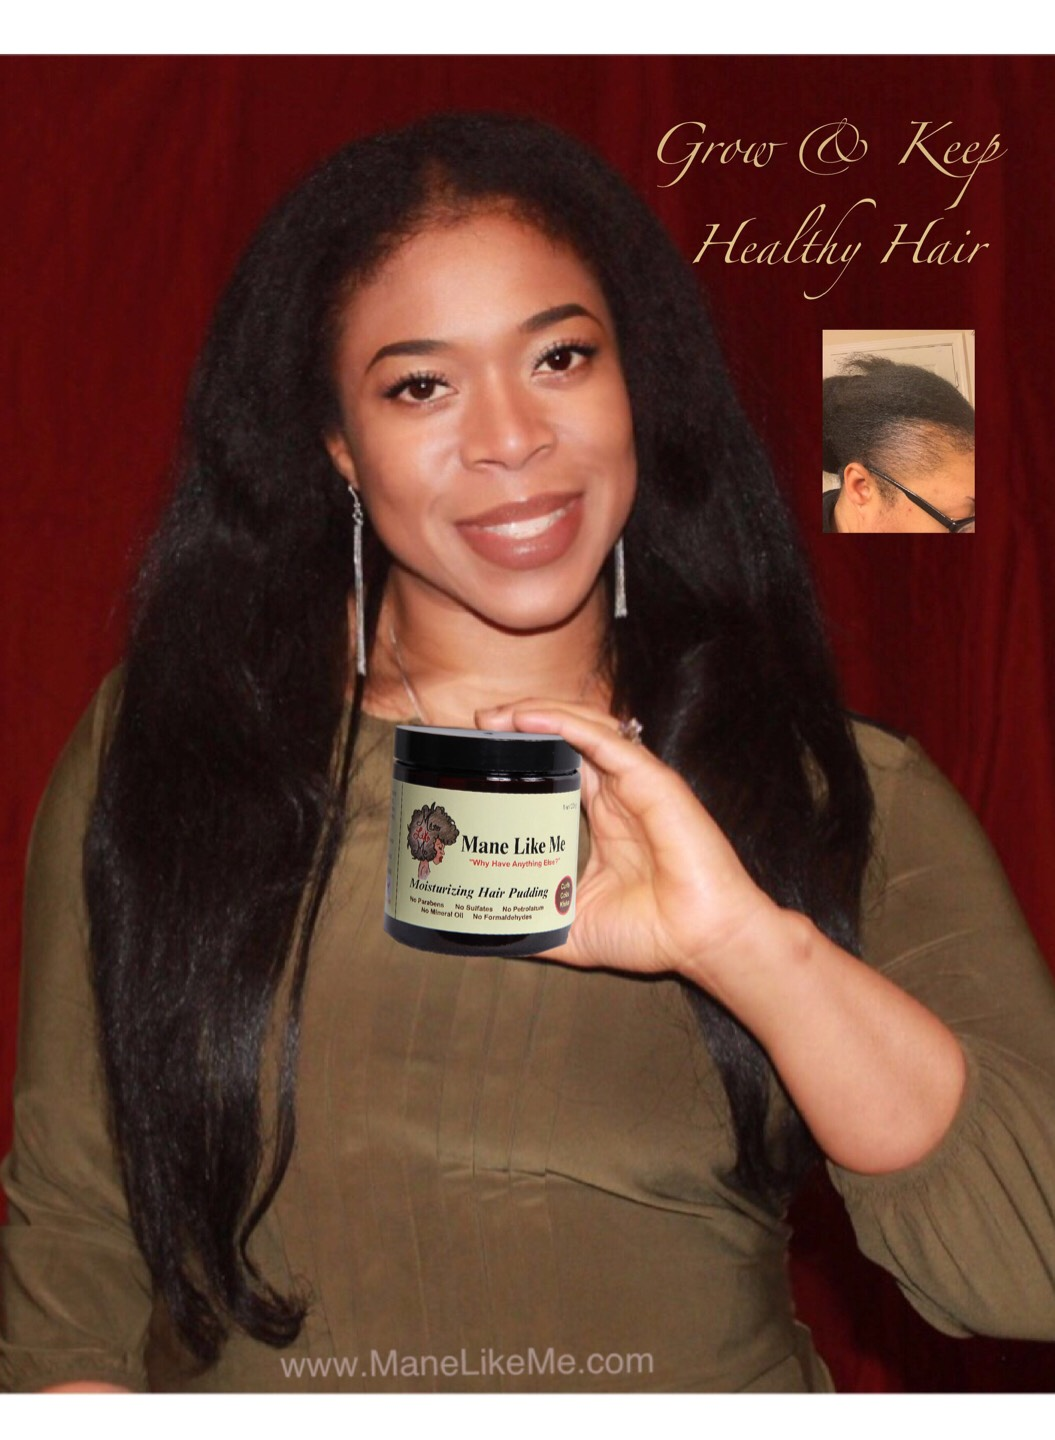 Owner of Mane Like Me Products